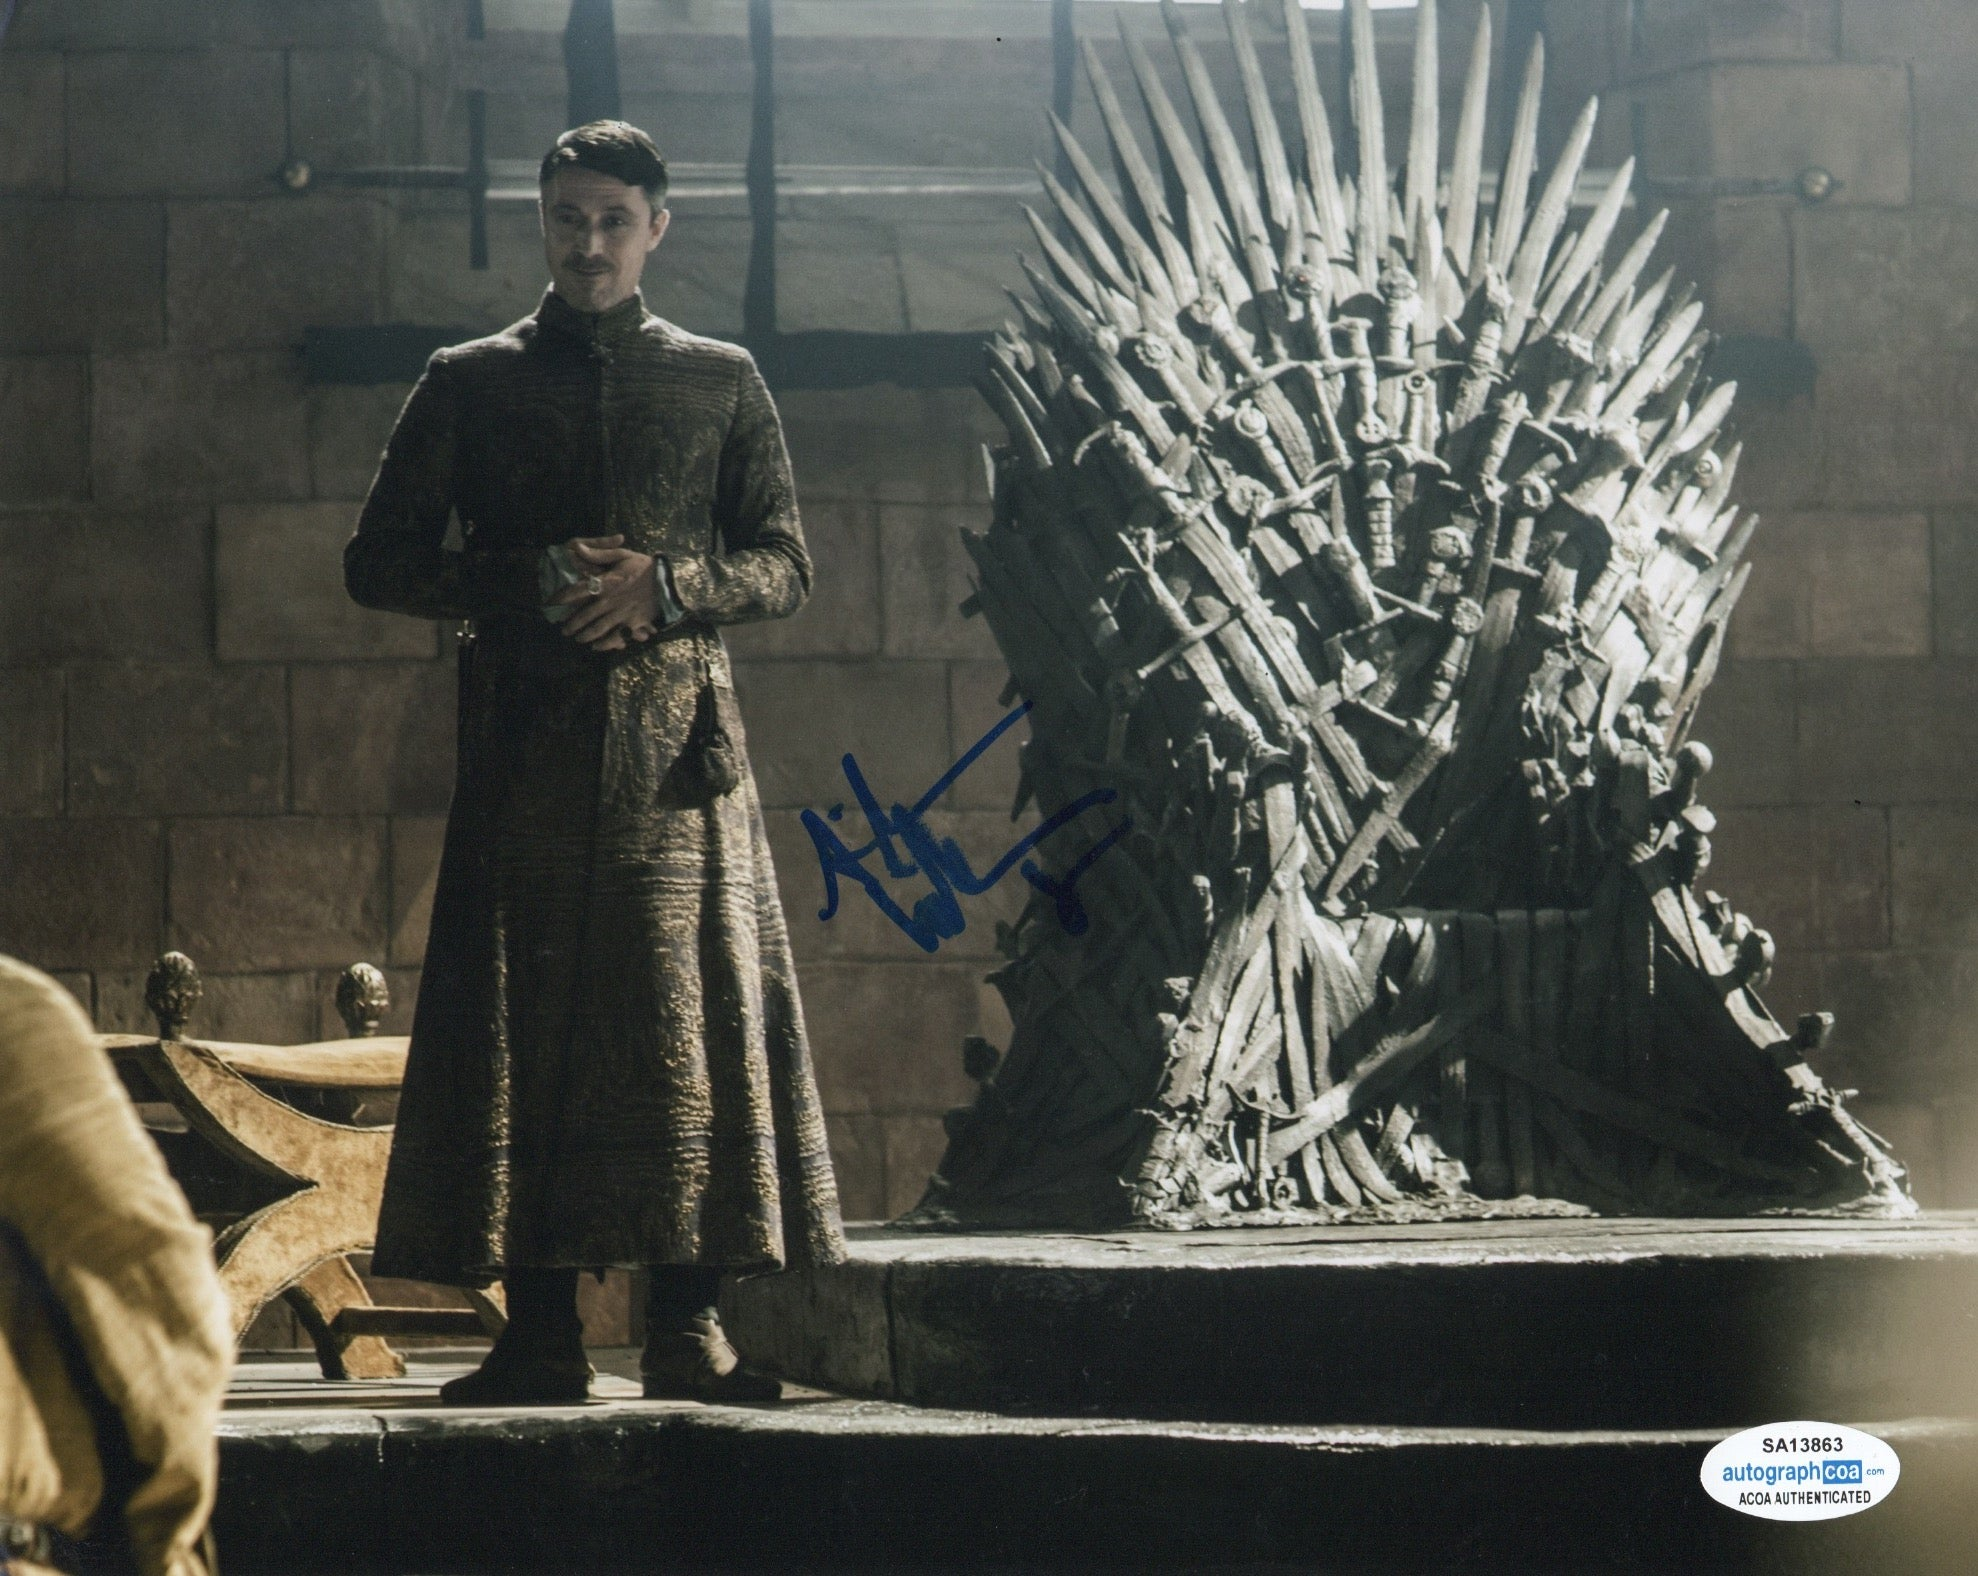 Aidan Gillen Game of Thrones Signed Autograph 8x10 Photo ACOA #10 - Outlaw Hobbies Authentic Autographs